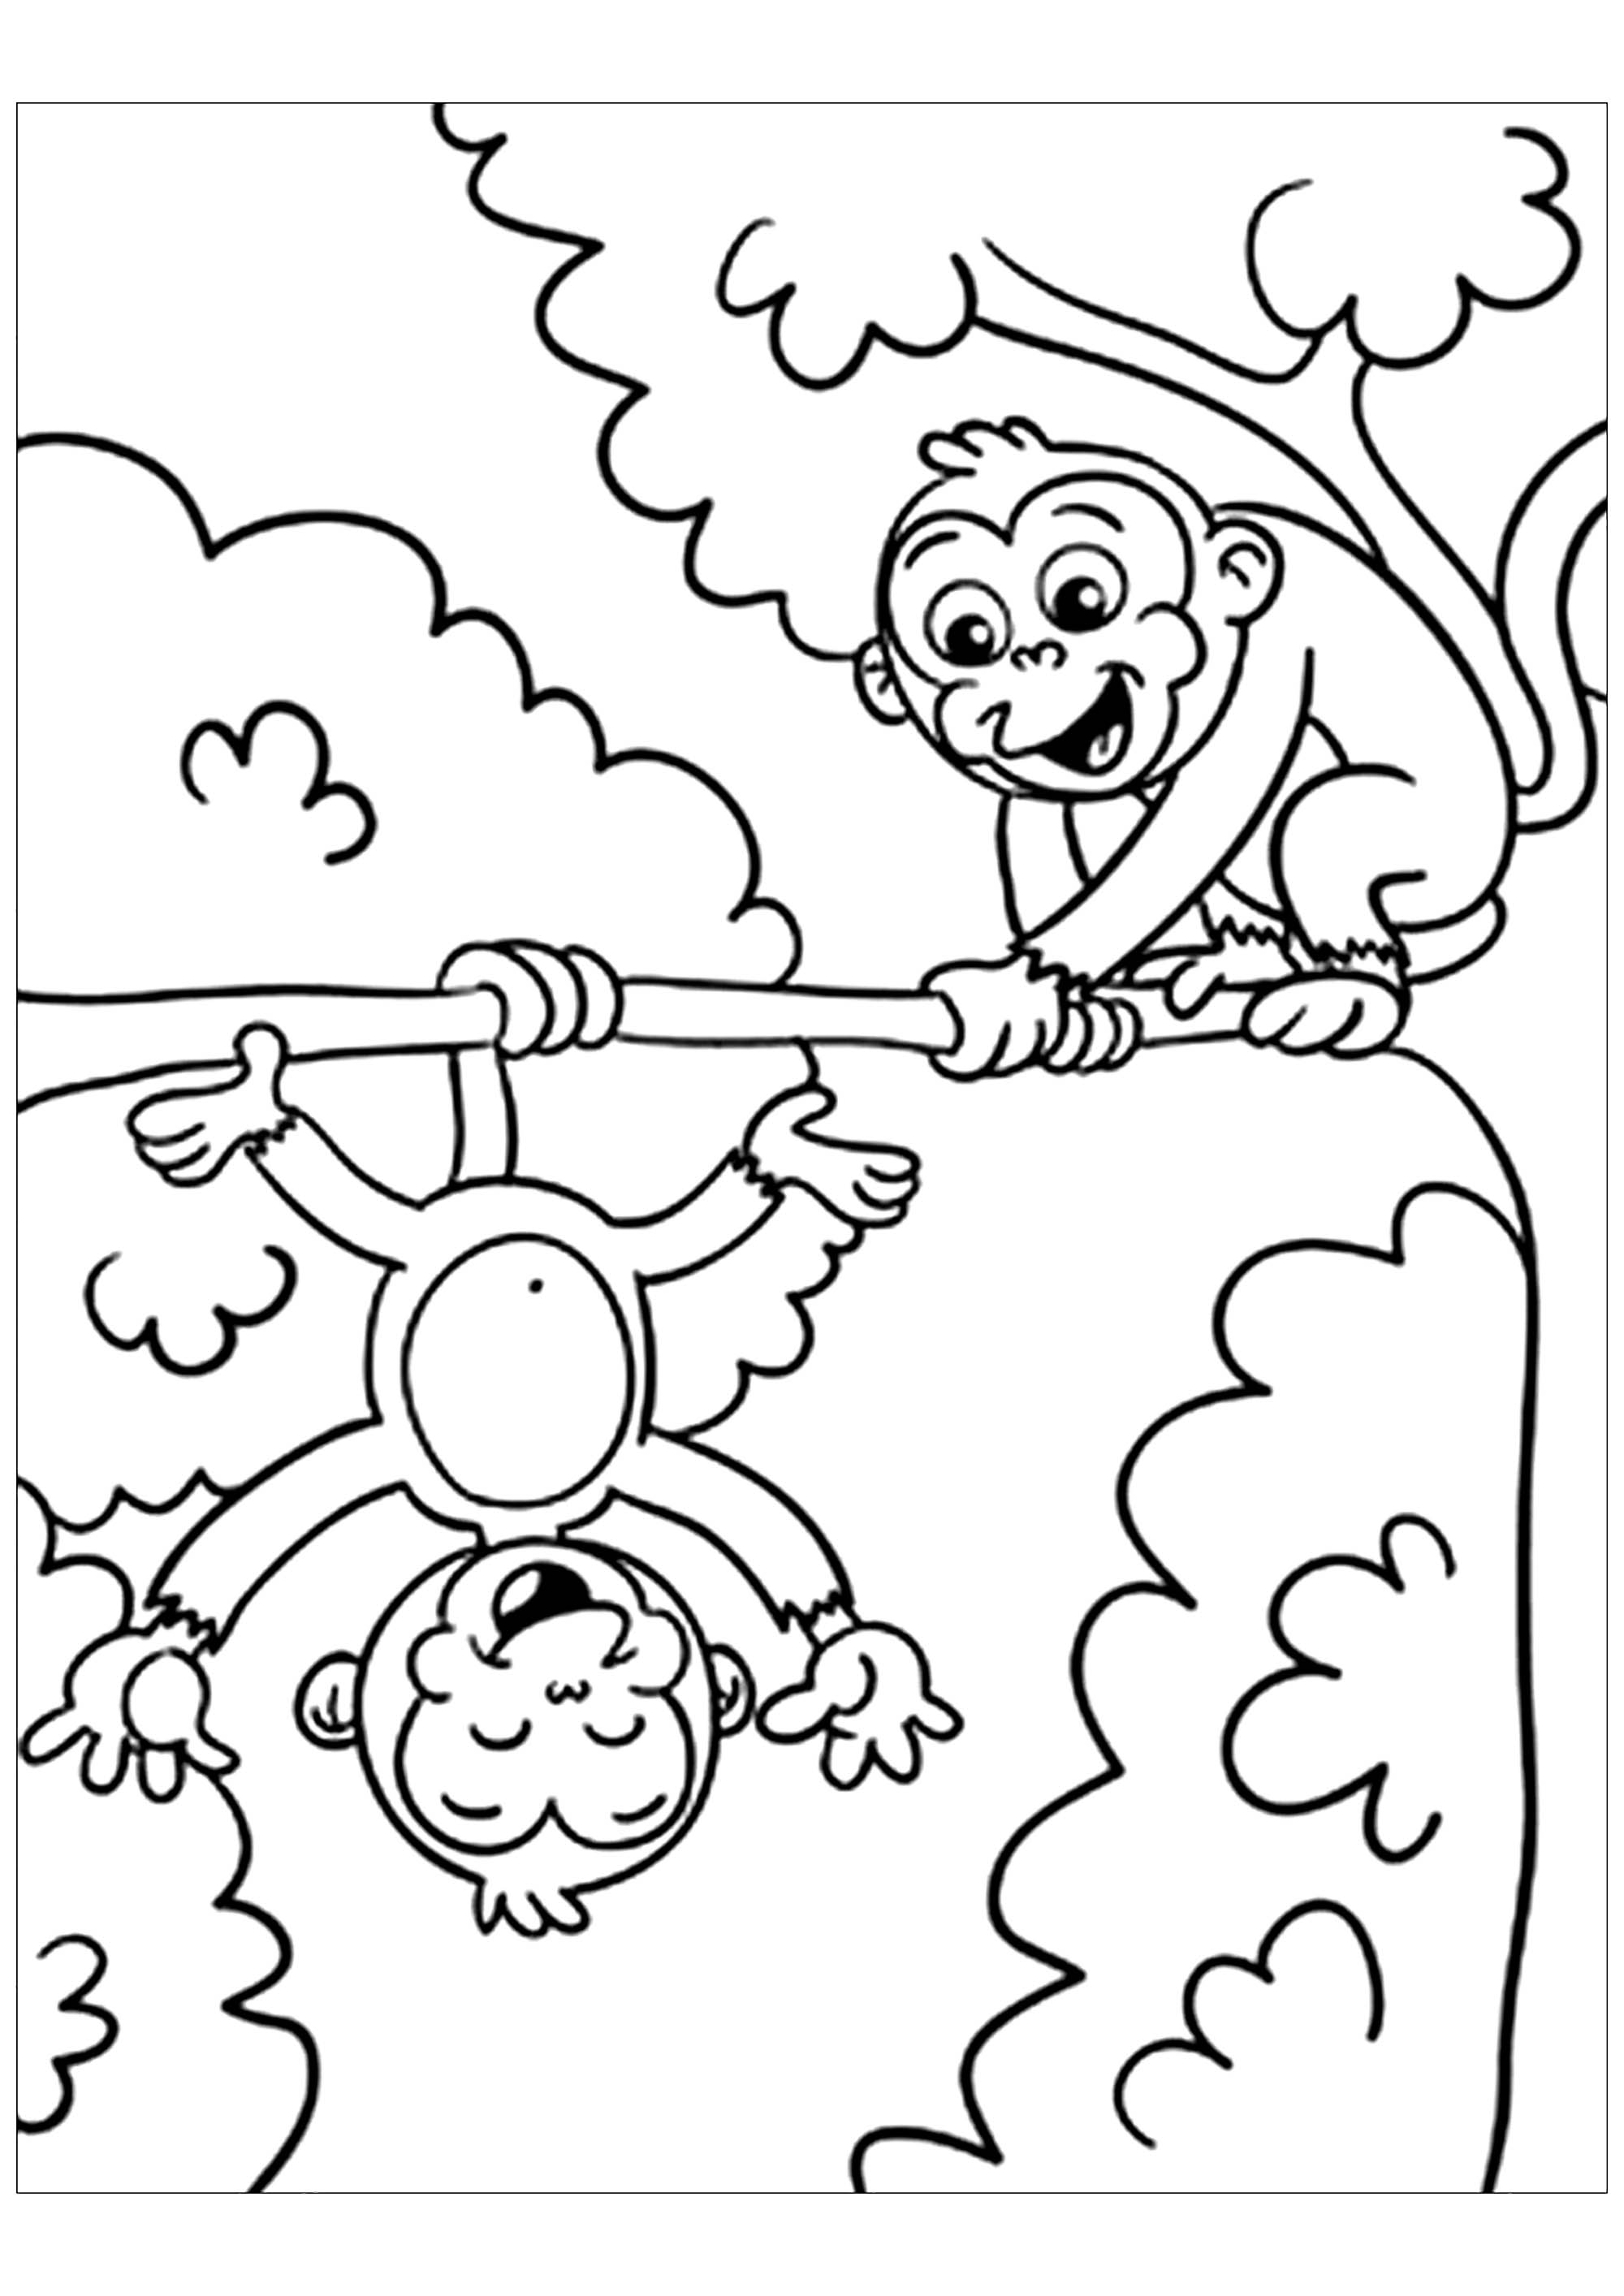 coloring picture of monkey monkeys to download monkeys kids coloring pages monkey coloring of picture